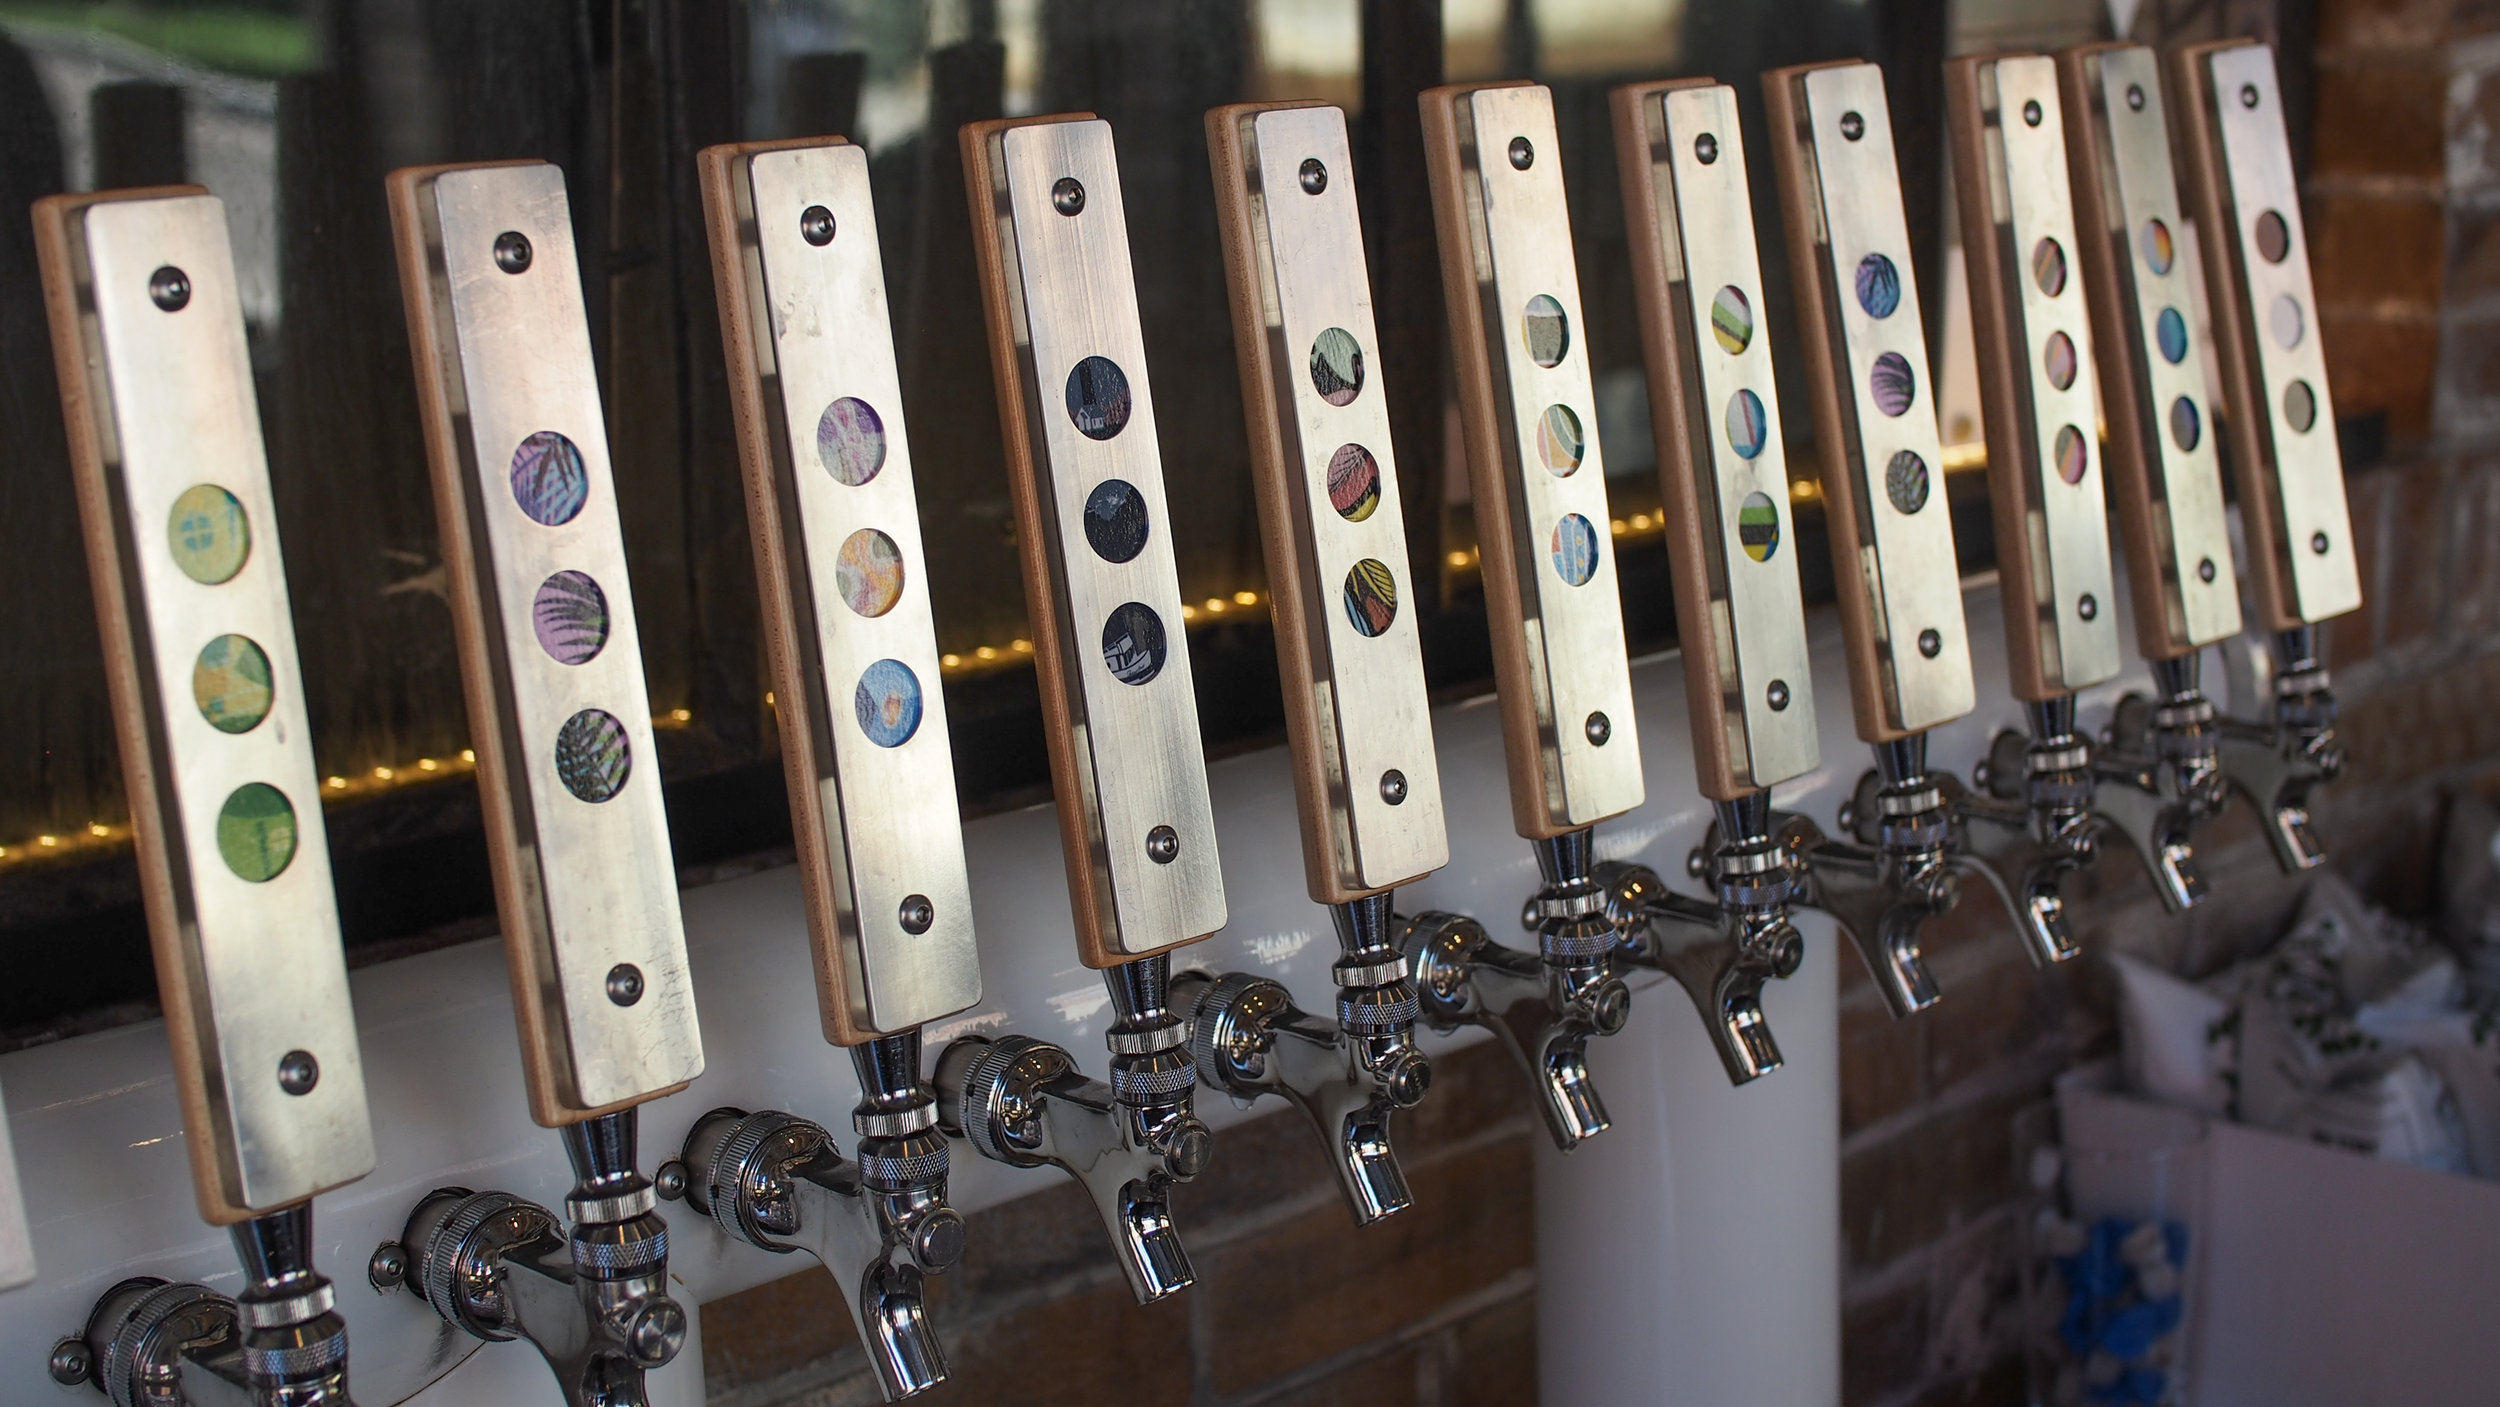 3 POINTS TAP HANDLES - WITH INTERCHANGEABLE ARTWORK